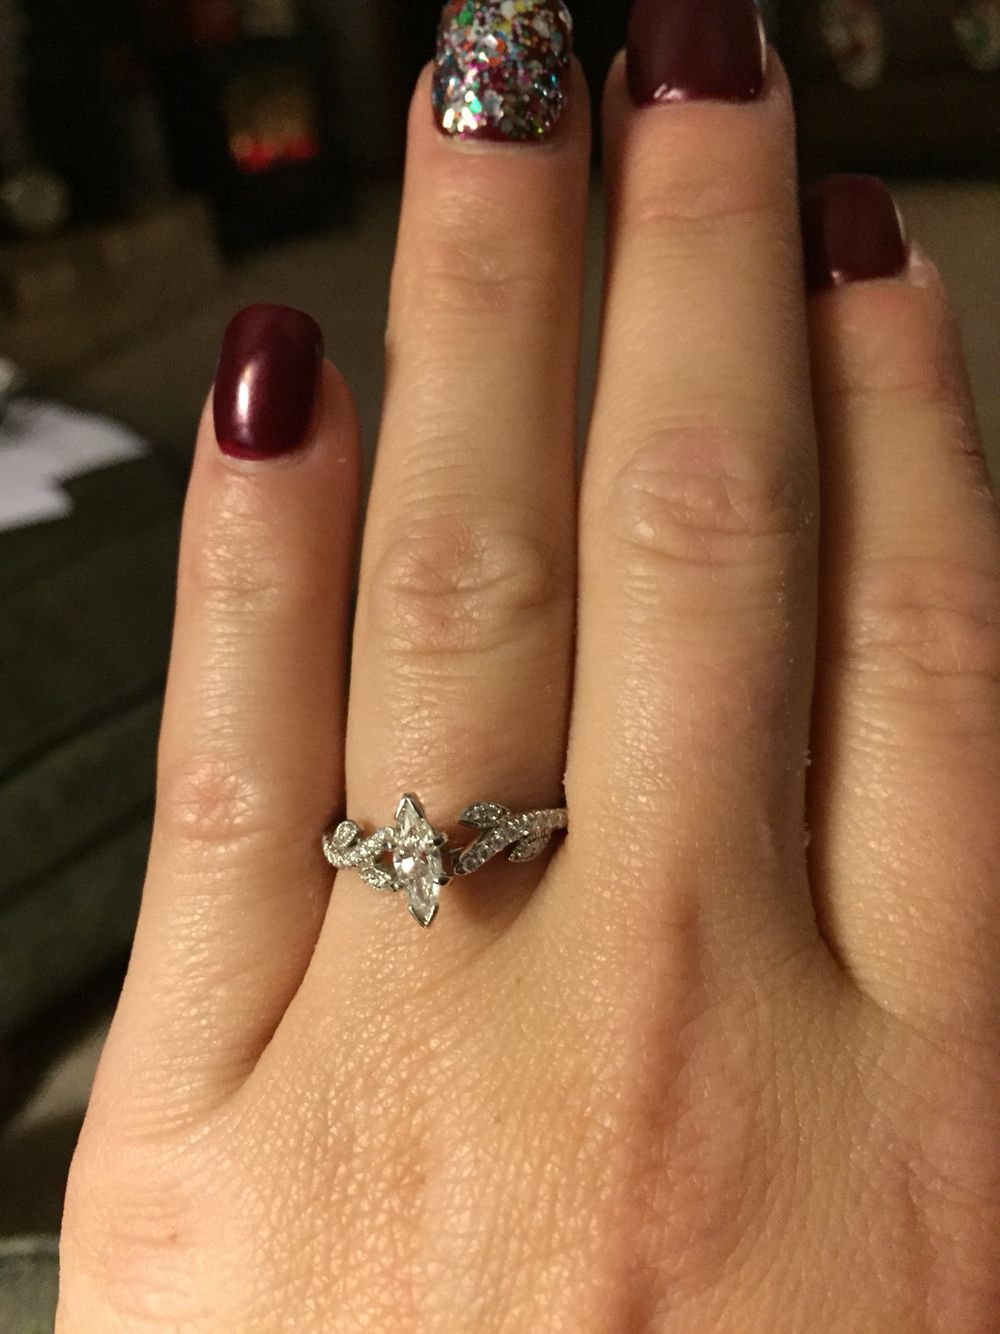 In love with my engagement ring!